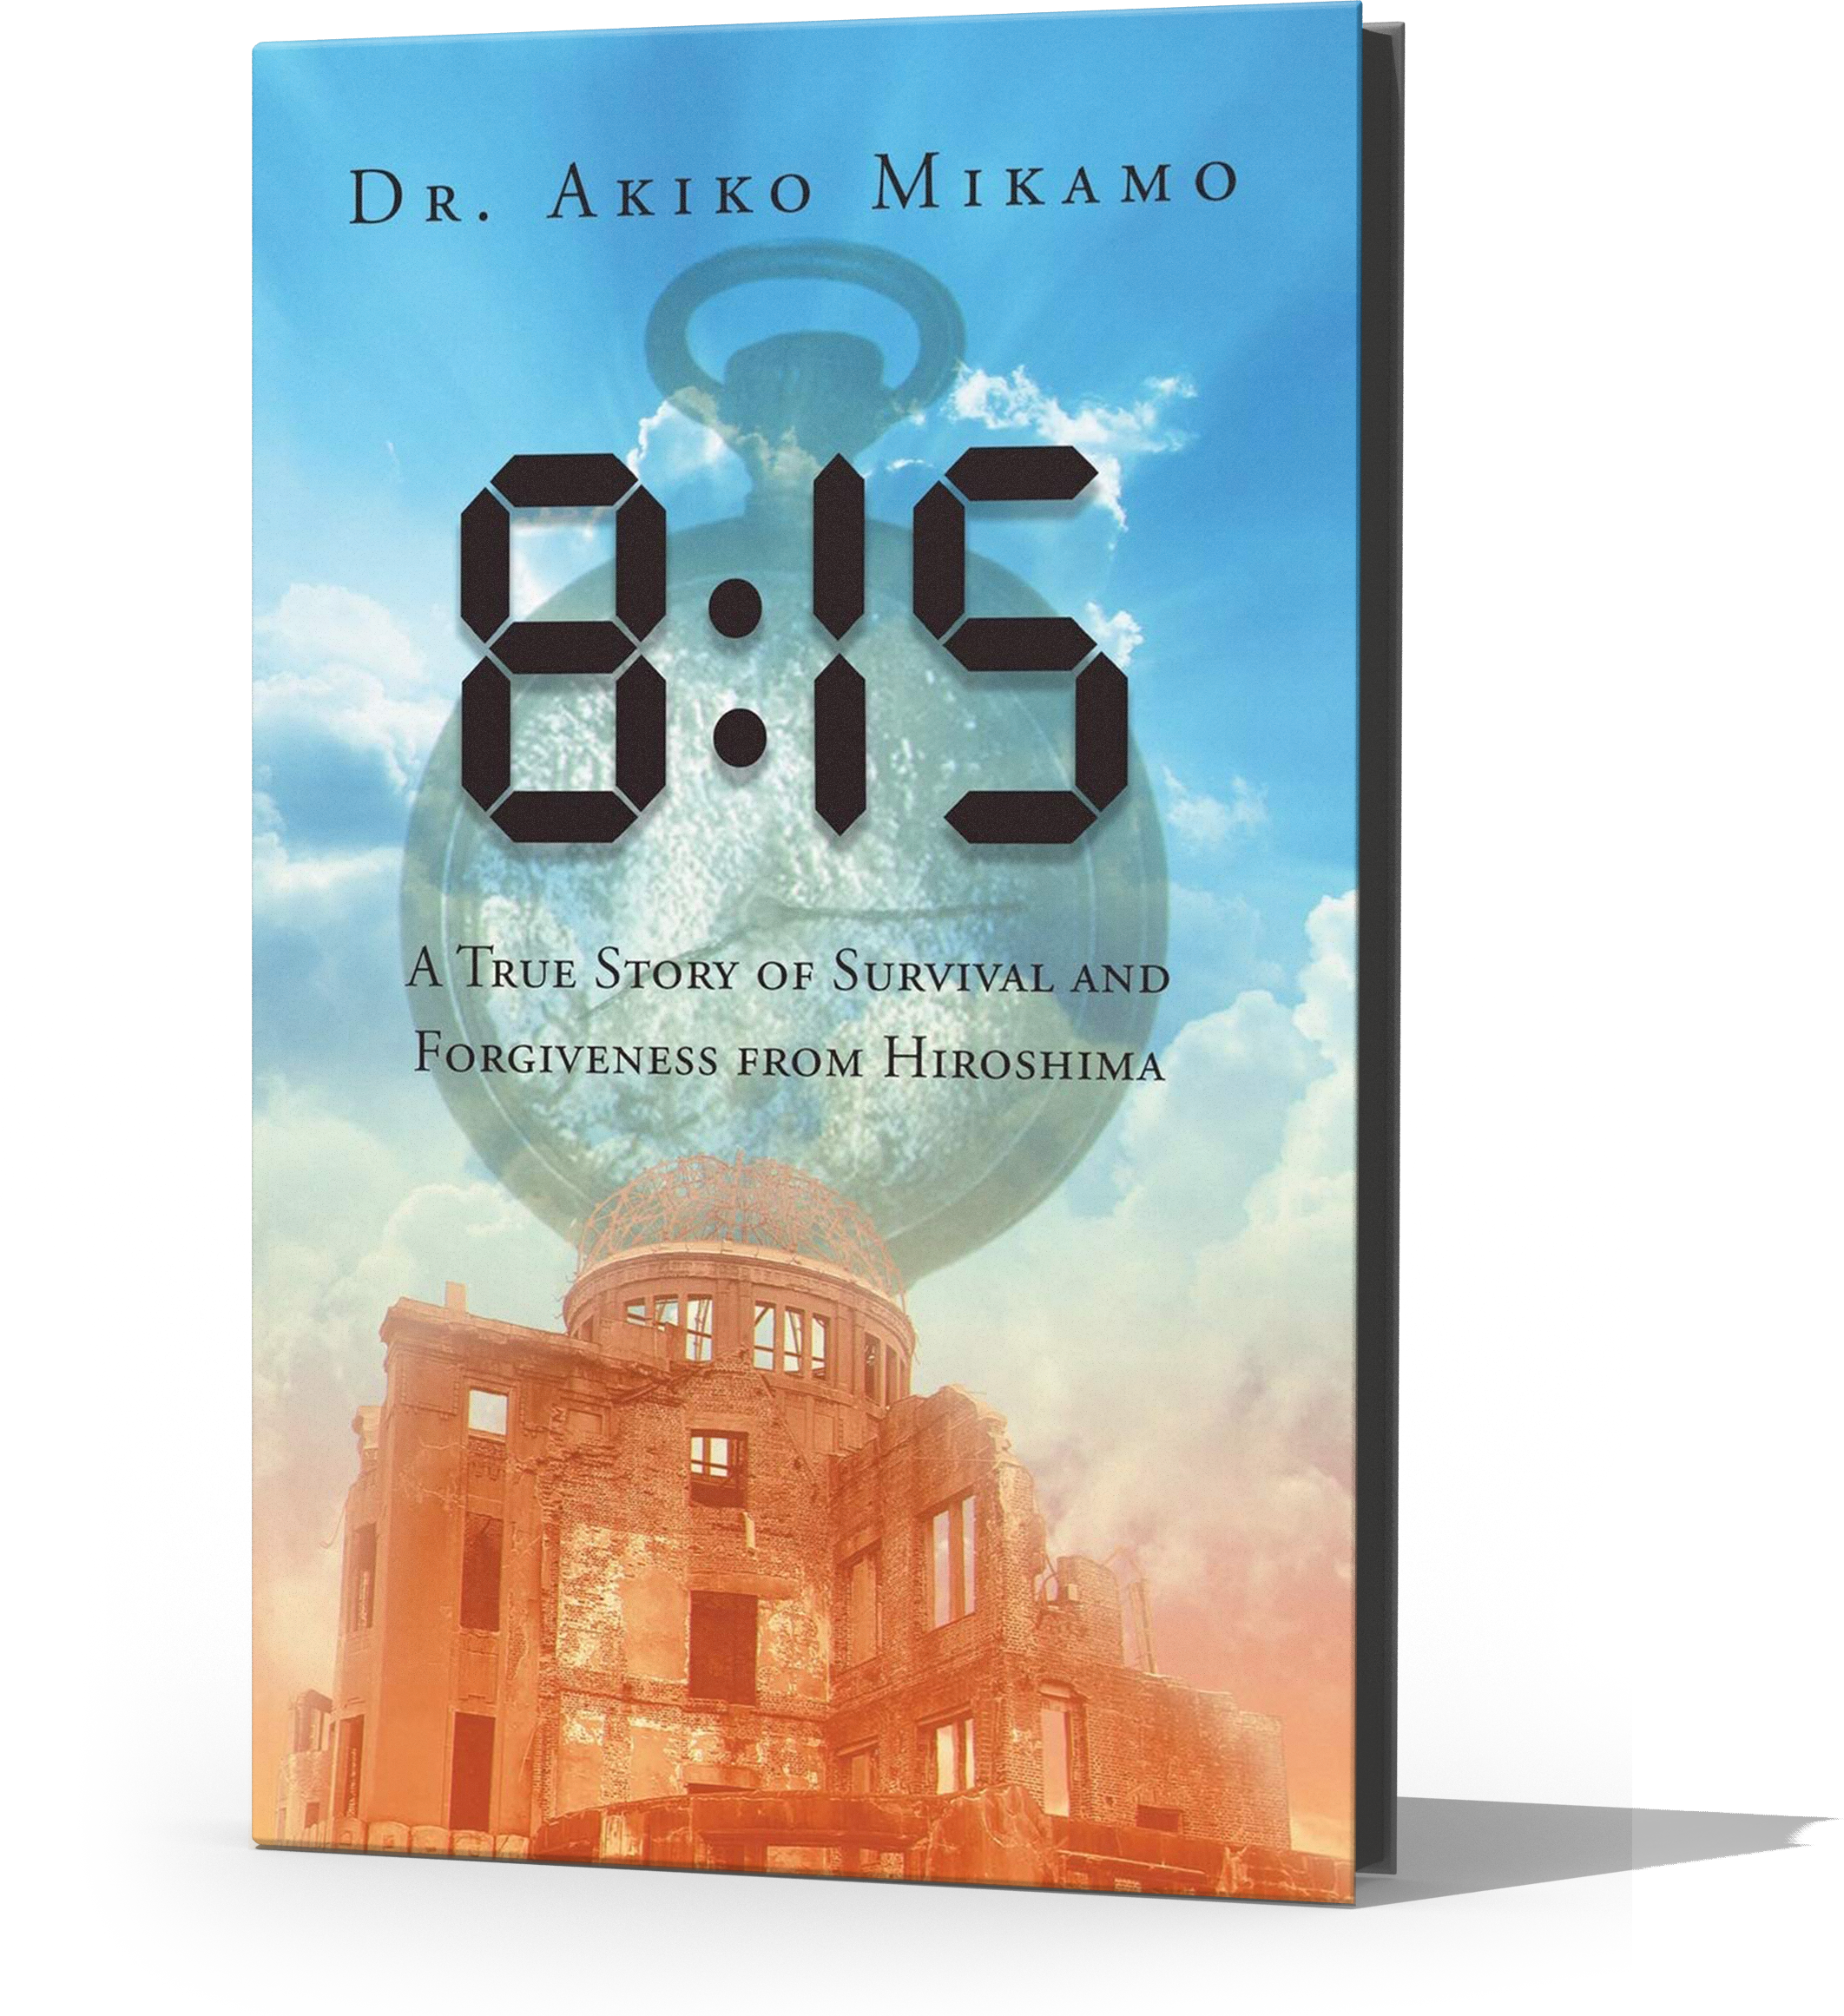 3D 8- 15- A True Story of Survival and Forgiveness from Hiroshima